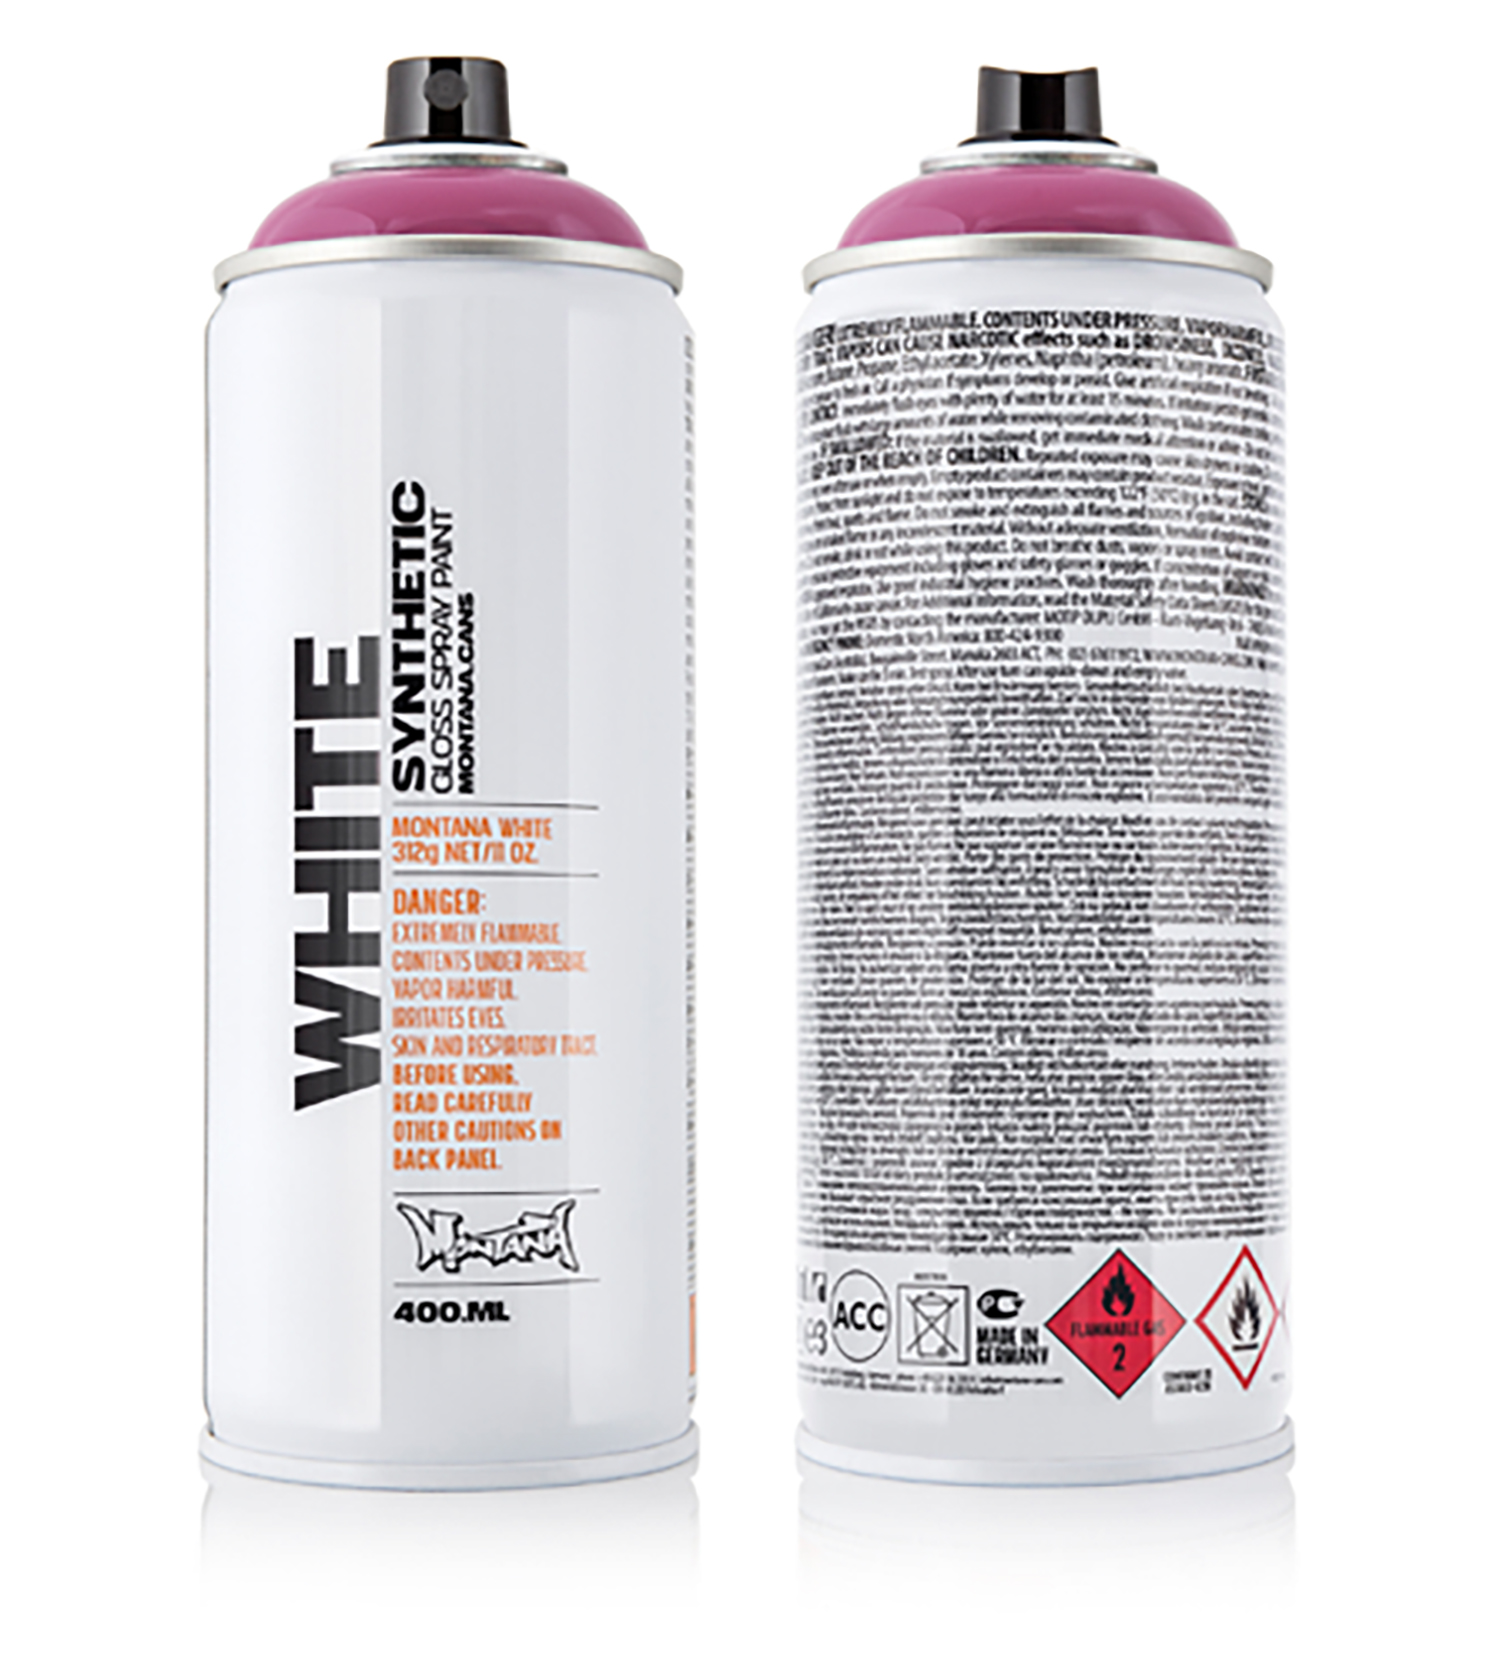 MONTANA-WHITE-SPRAY-400ML-4040